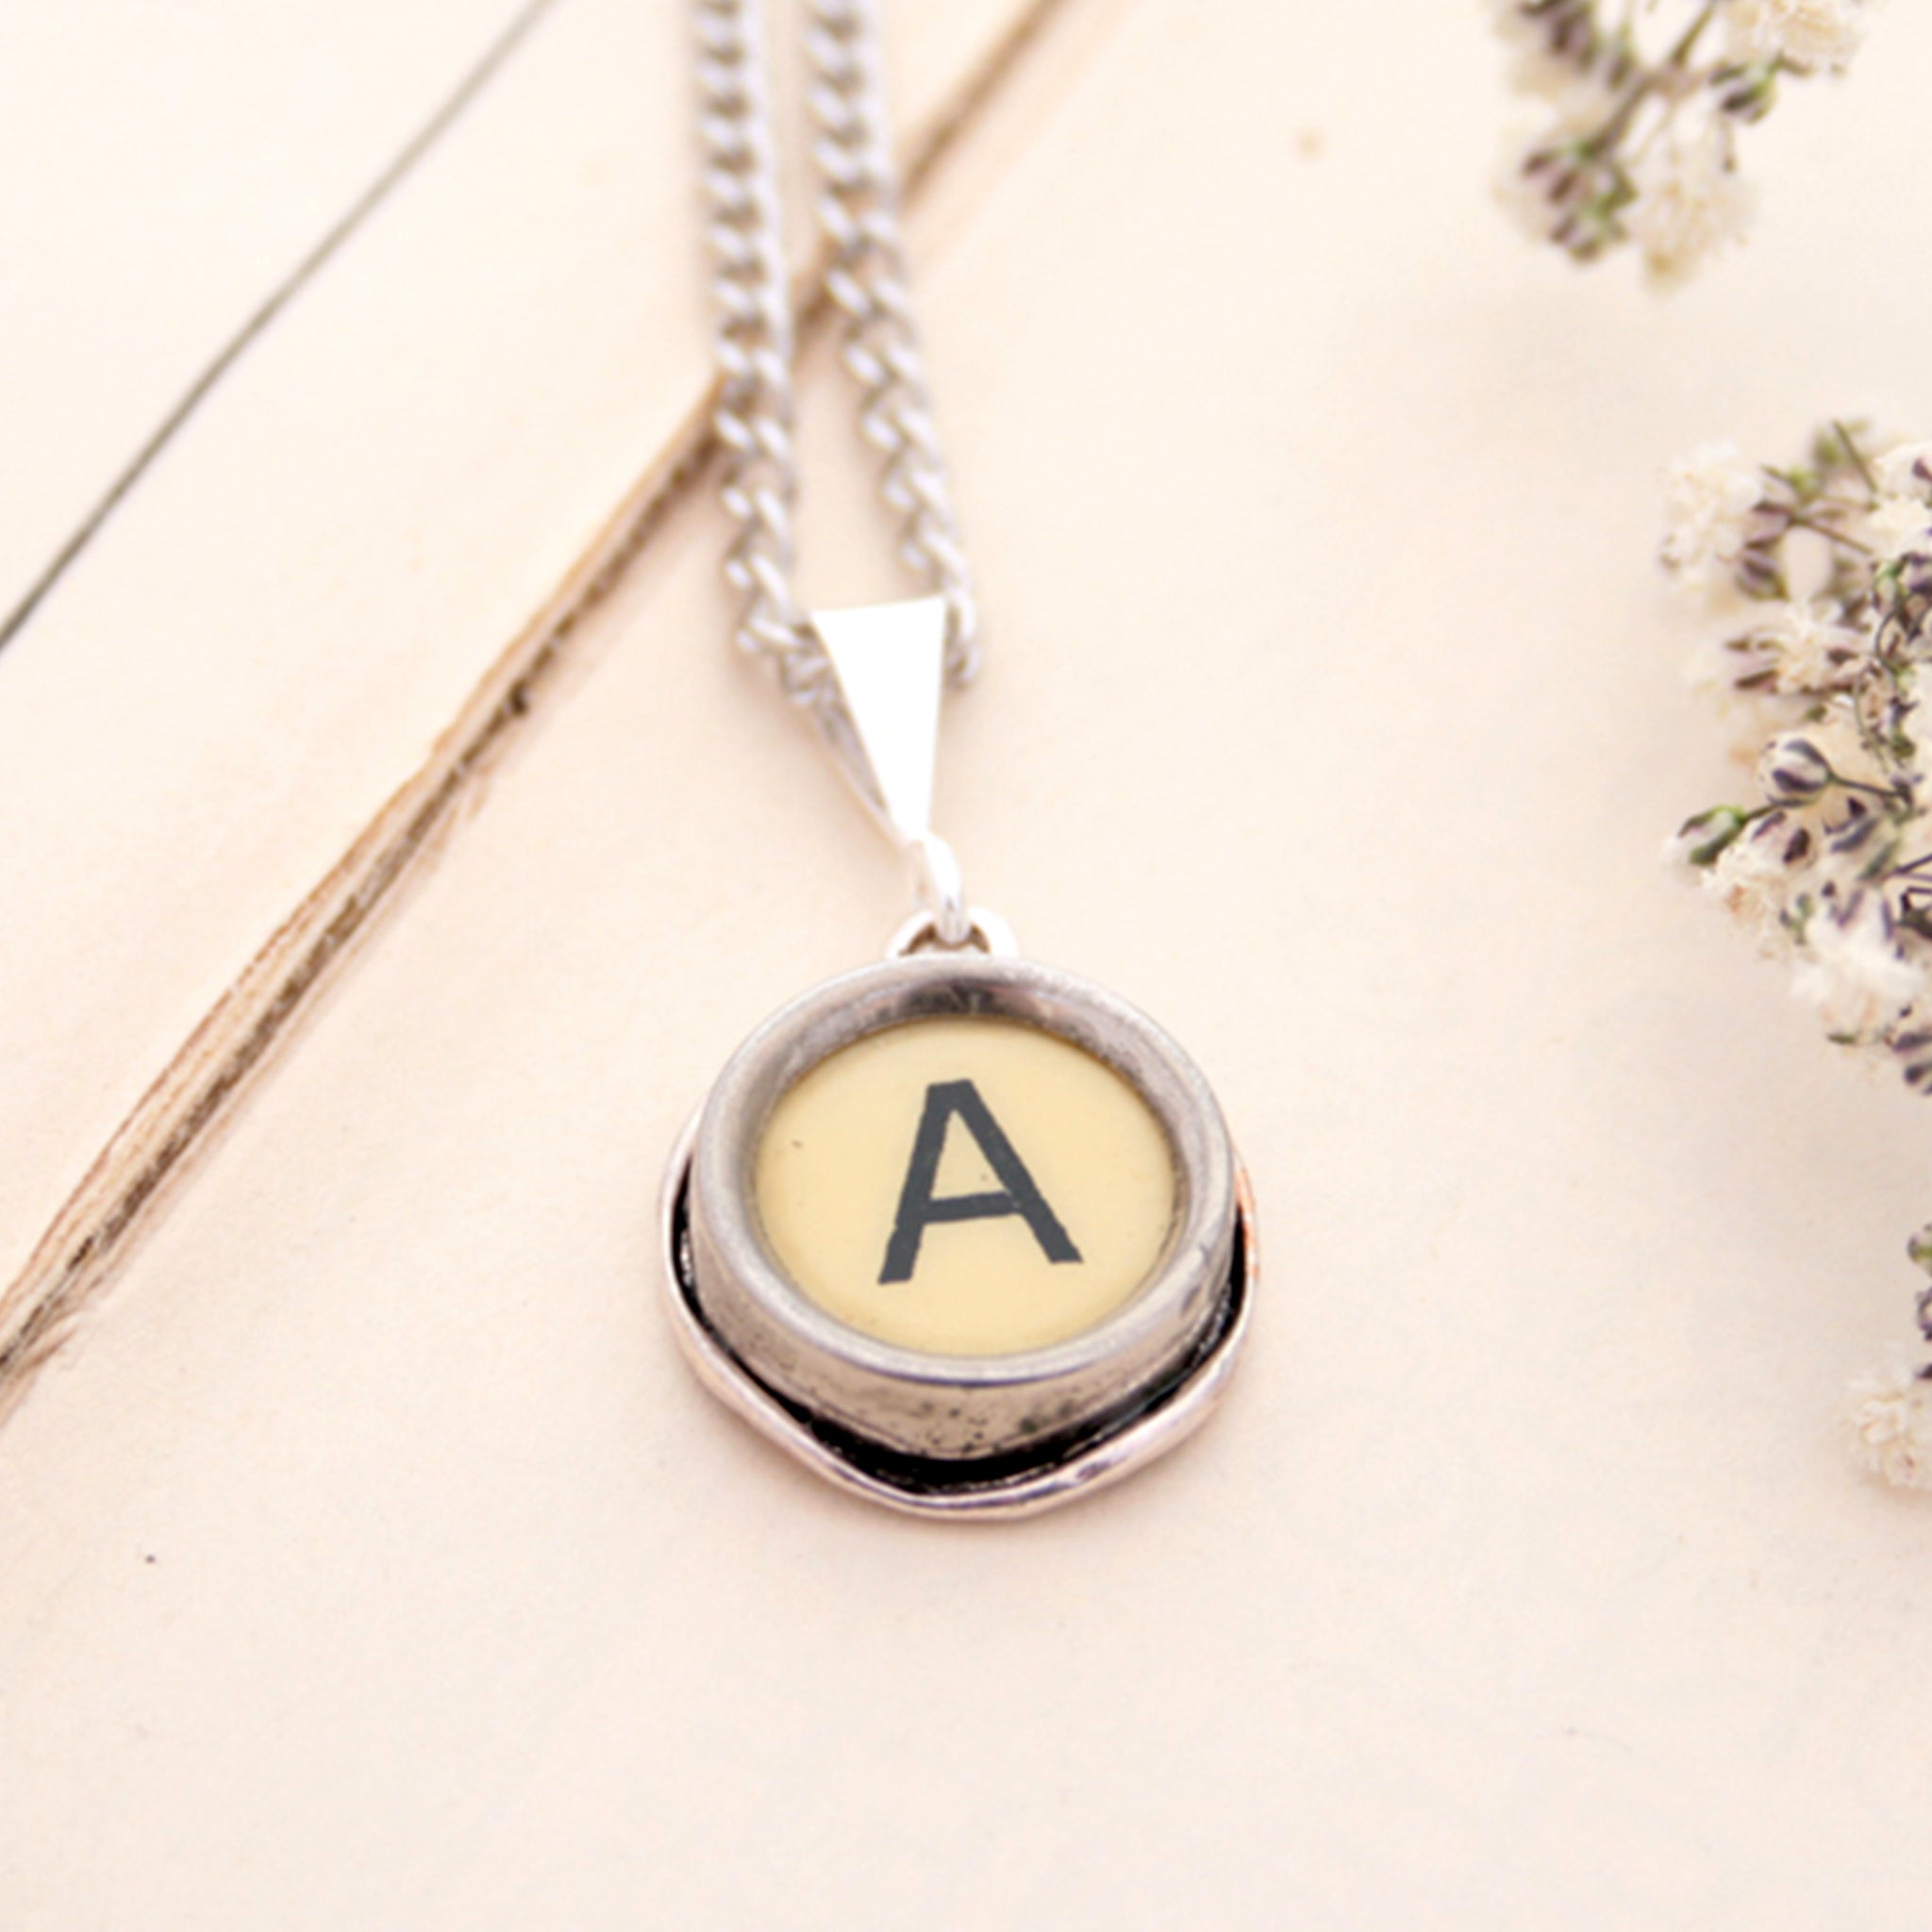 A letter necklace in ivory color made of vintage typewriter key